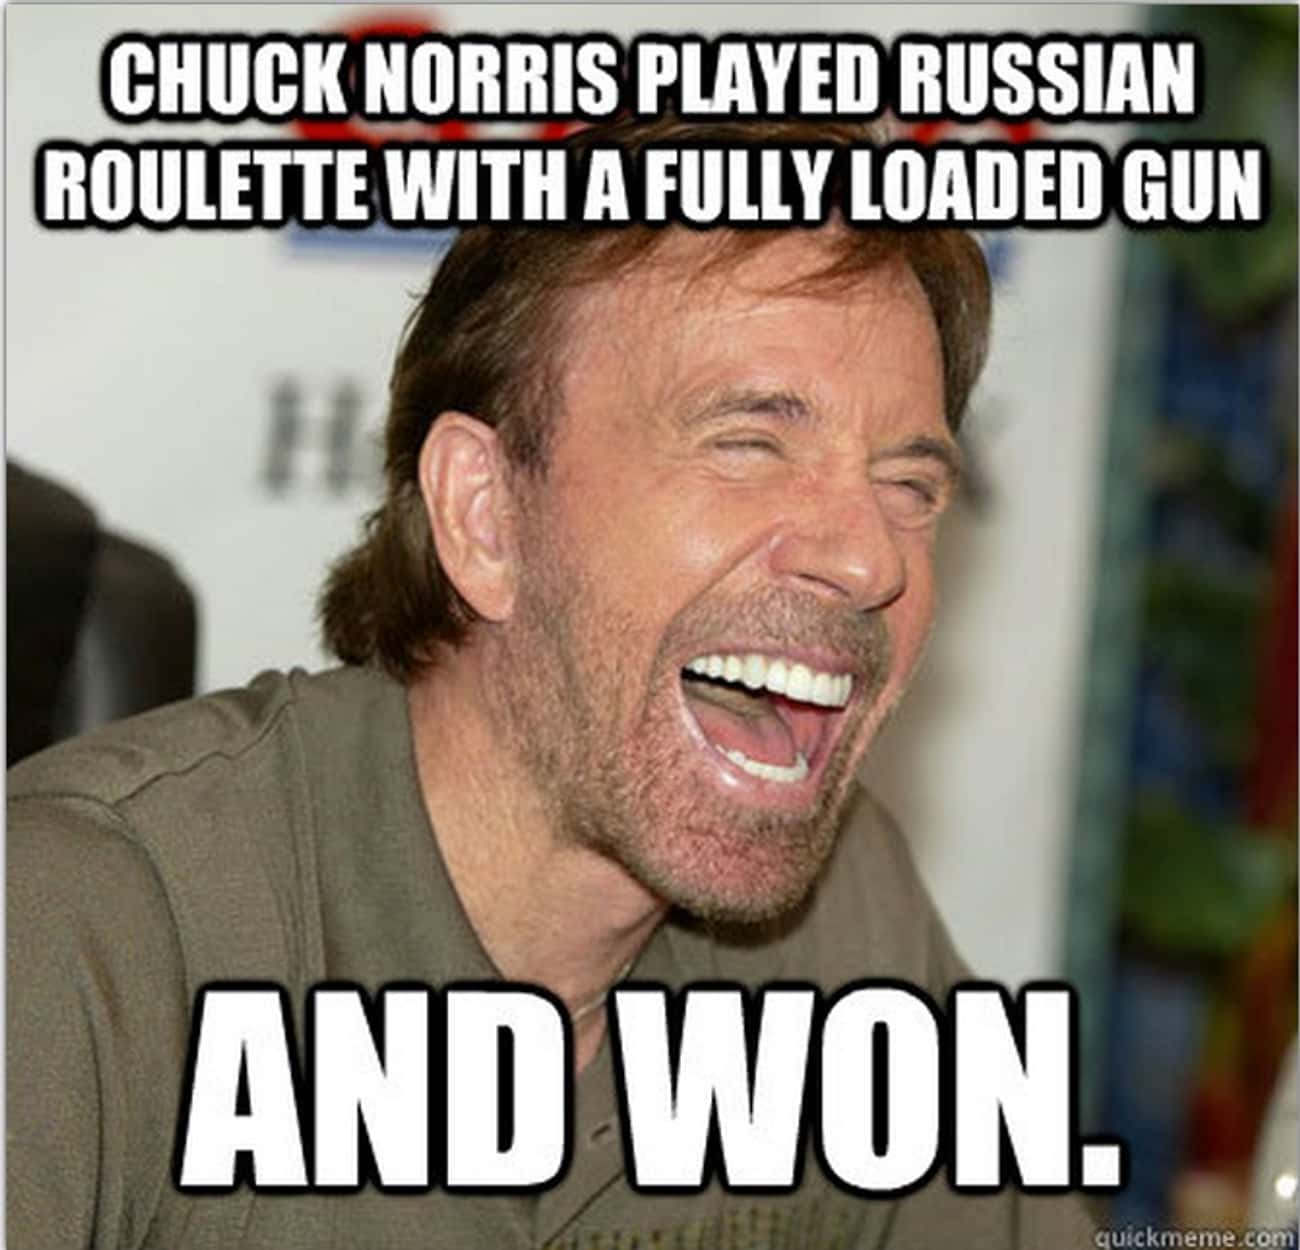 A Game Of Russian Roulette is listed (or ranked) 3 on the list The 18 Funniest Chuck Norris Jokes of All Time